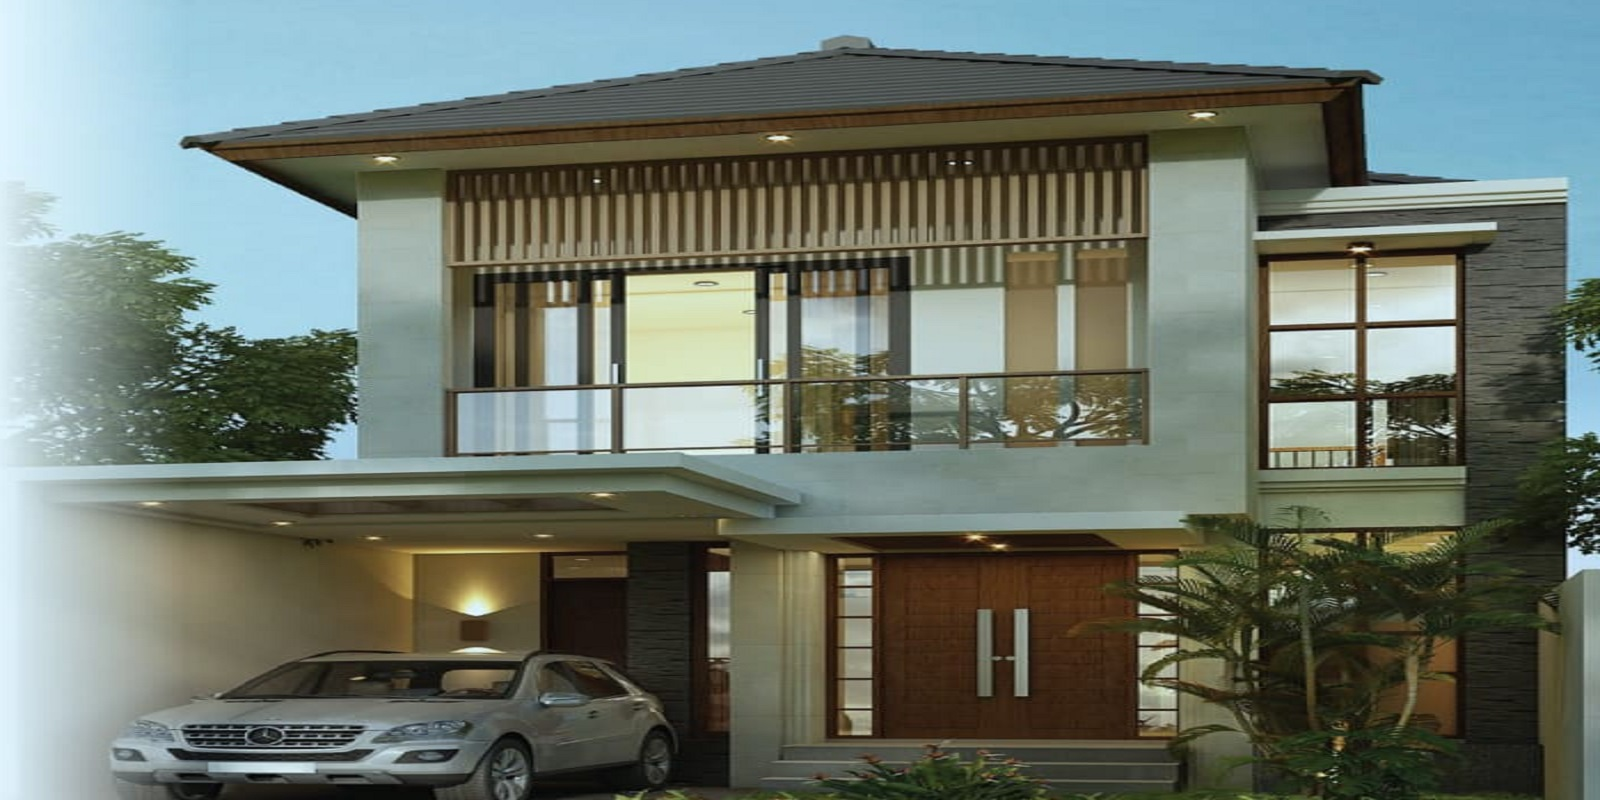 green dreams villas project project large image1